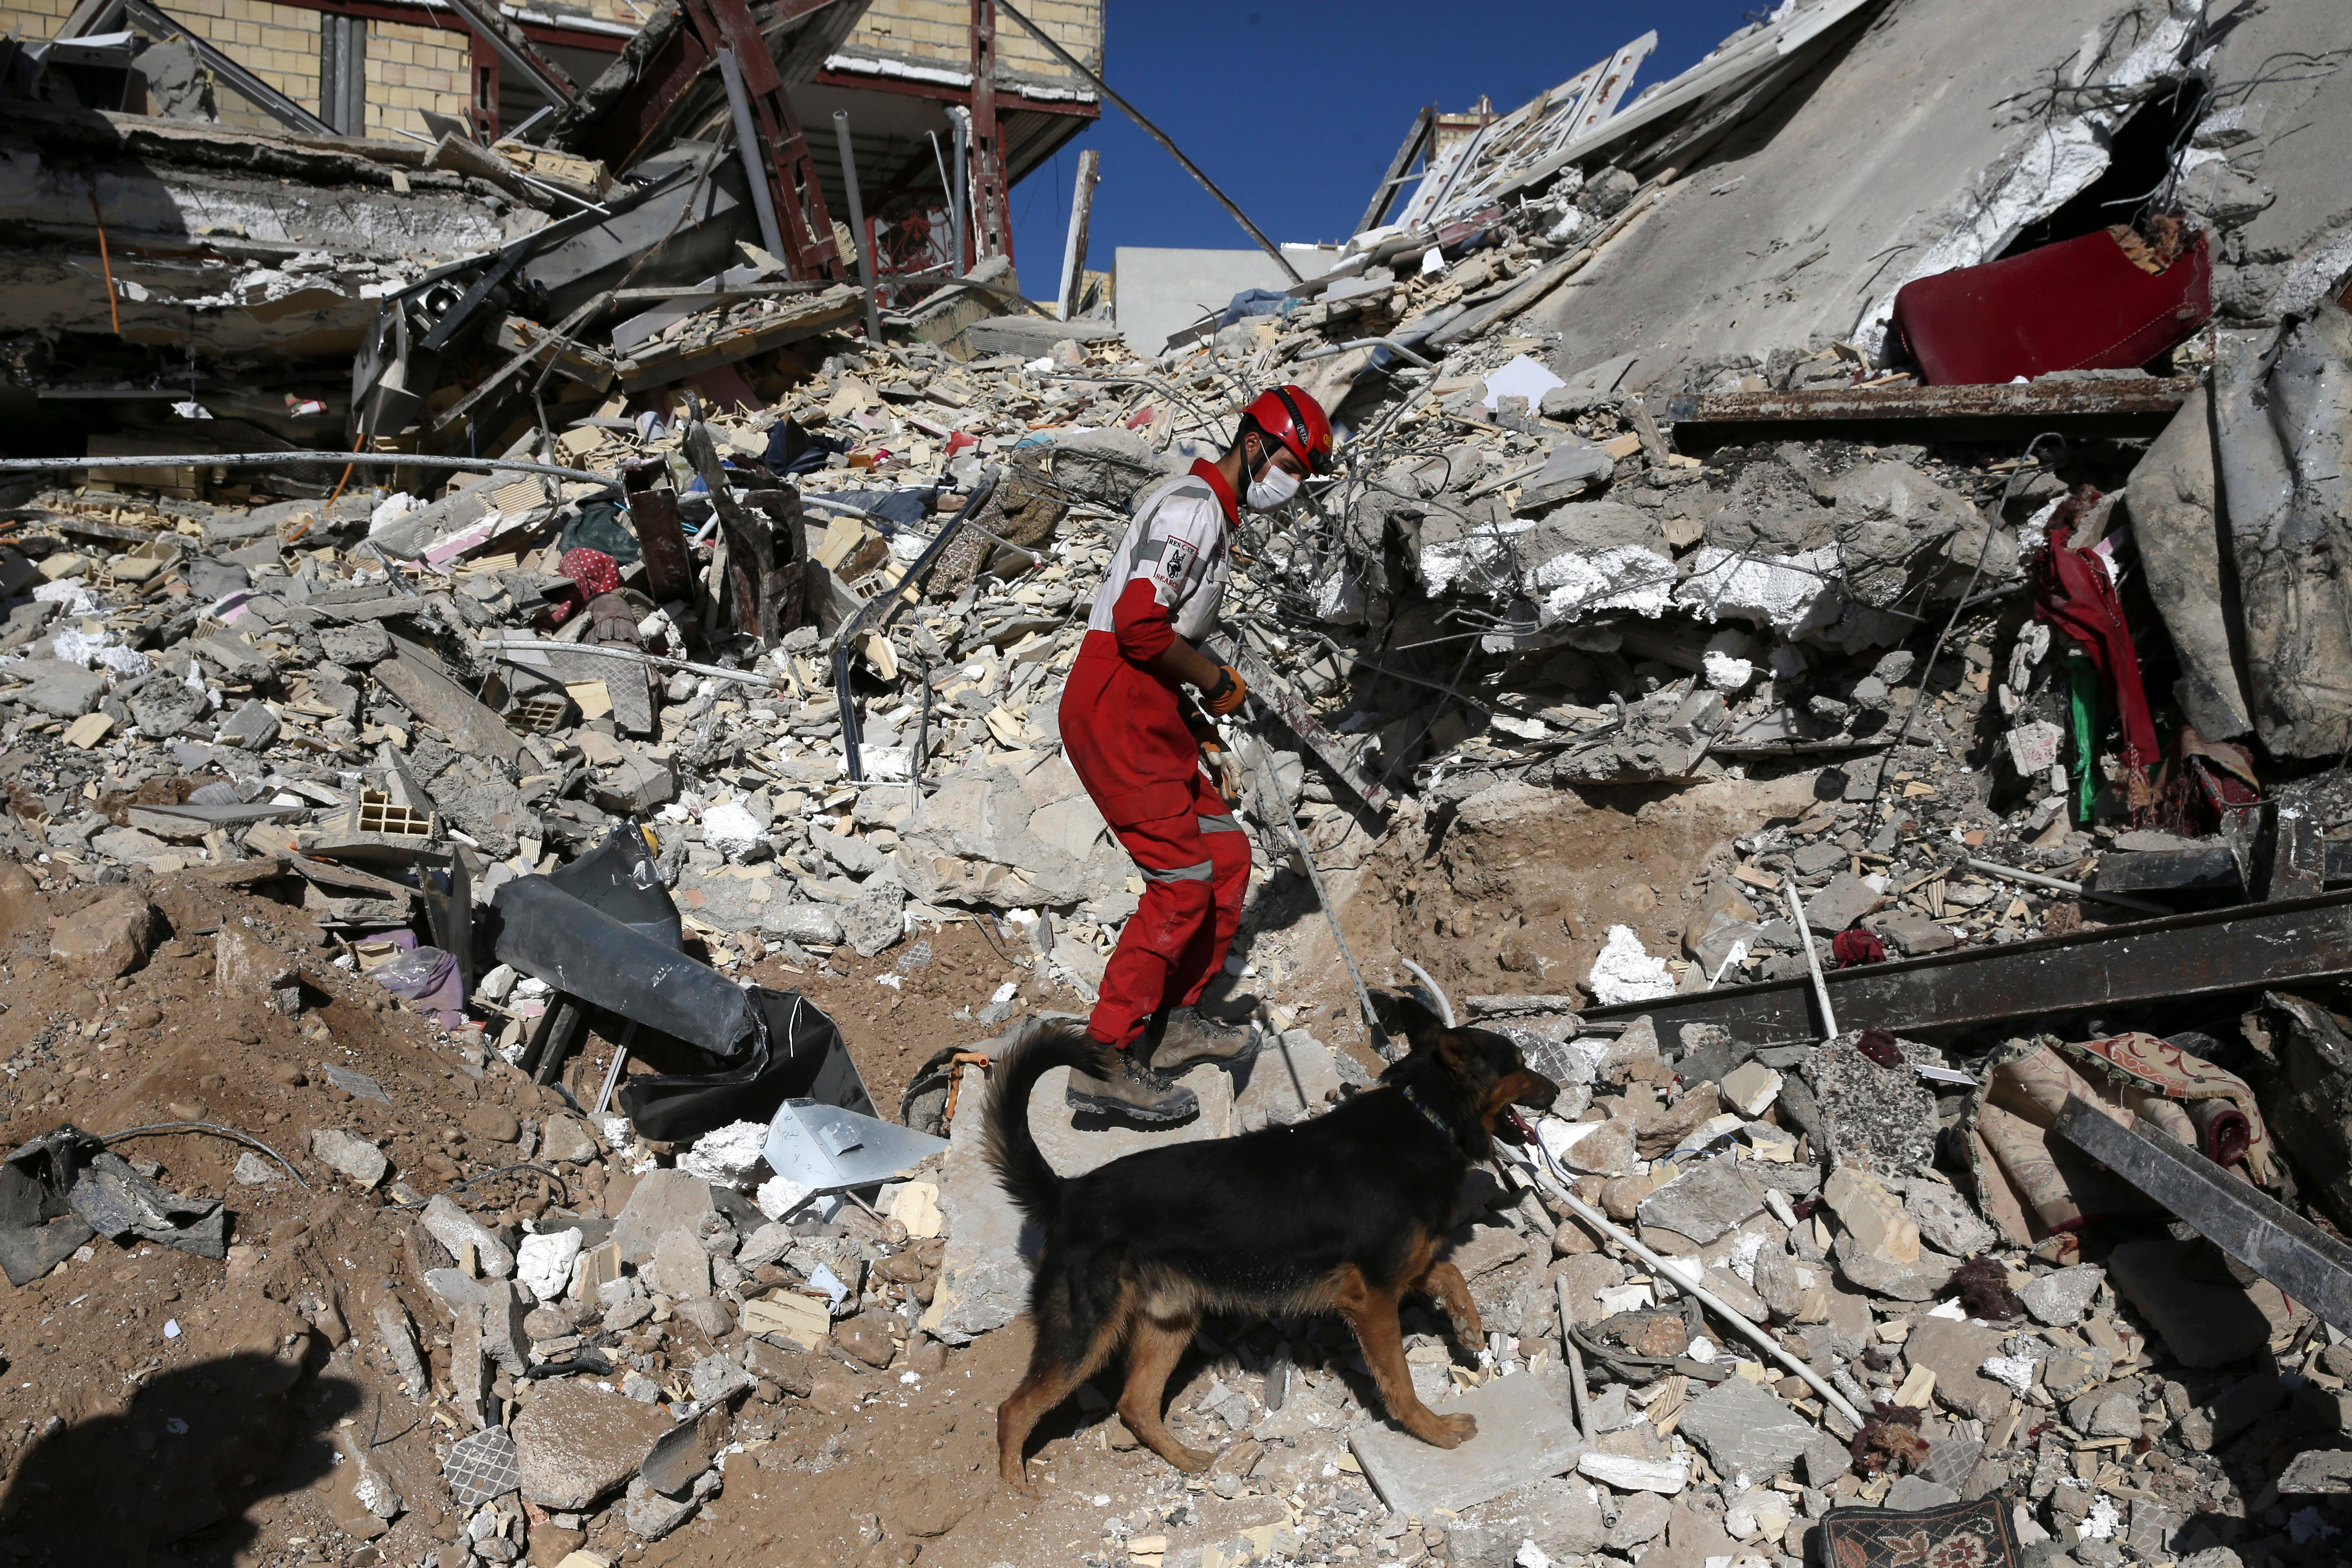 A rescue worker searches the debris with his sniffing dog on the earthquake site in Sarpol-e-Zahab in western Iran, Tuesday, Nov. 14, 2017. Rescuers are digging through the debris of buildings felled by the Sunday earthquake that killed more than four hundreds of people in the border region of Iran and Iraq. (AP Photo/Vahid Salemi)